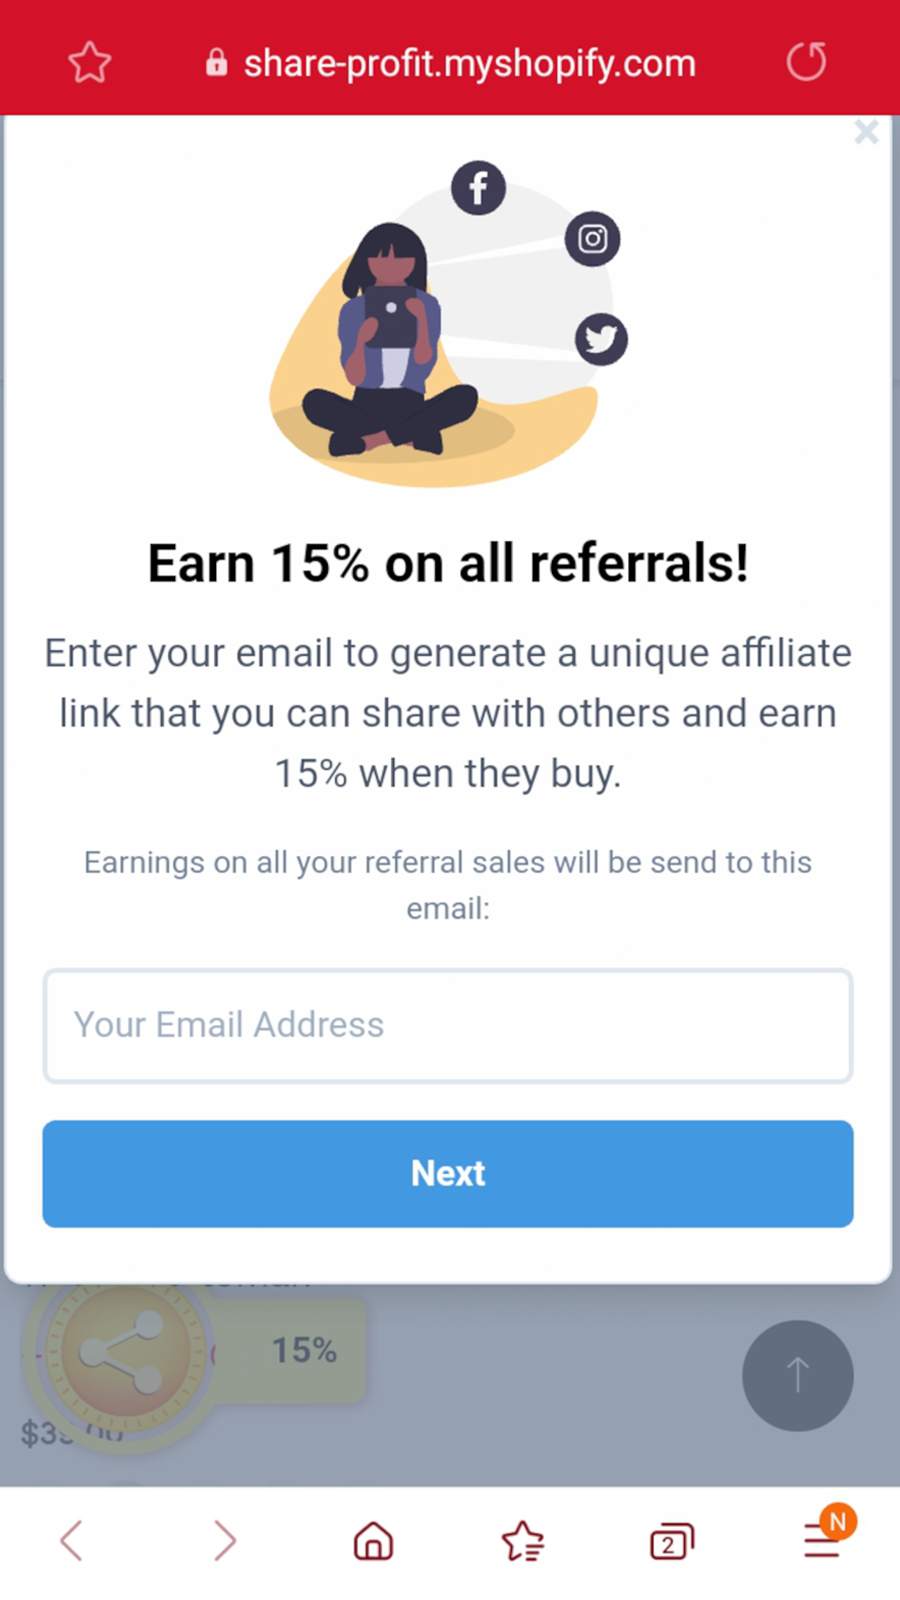 Email is all one needs to start promoting your store.